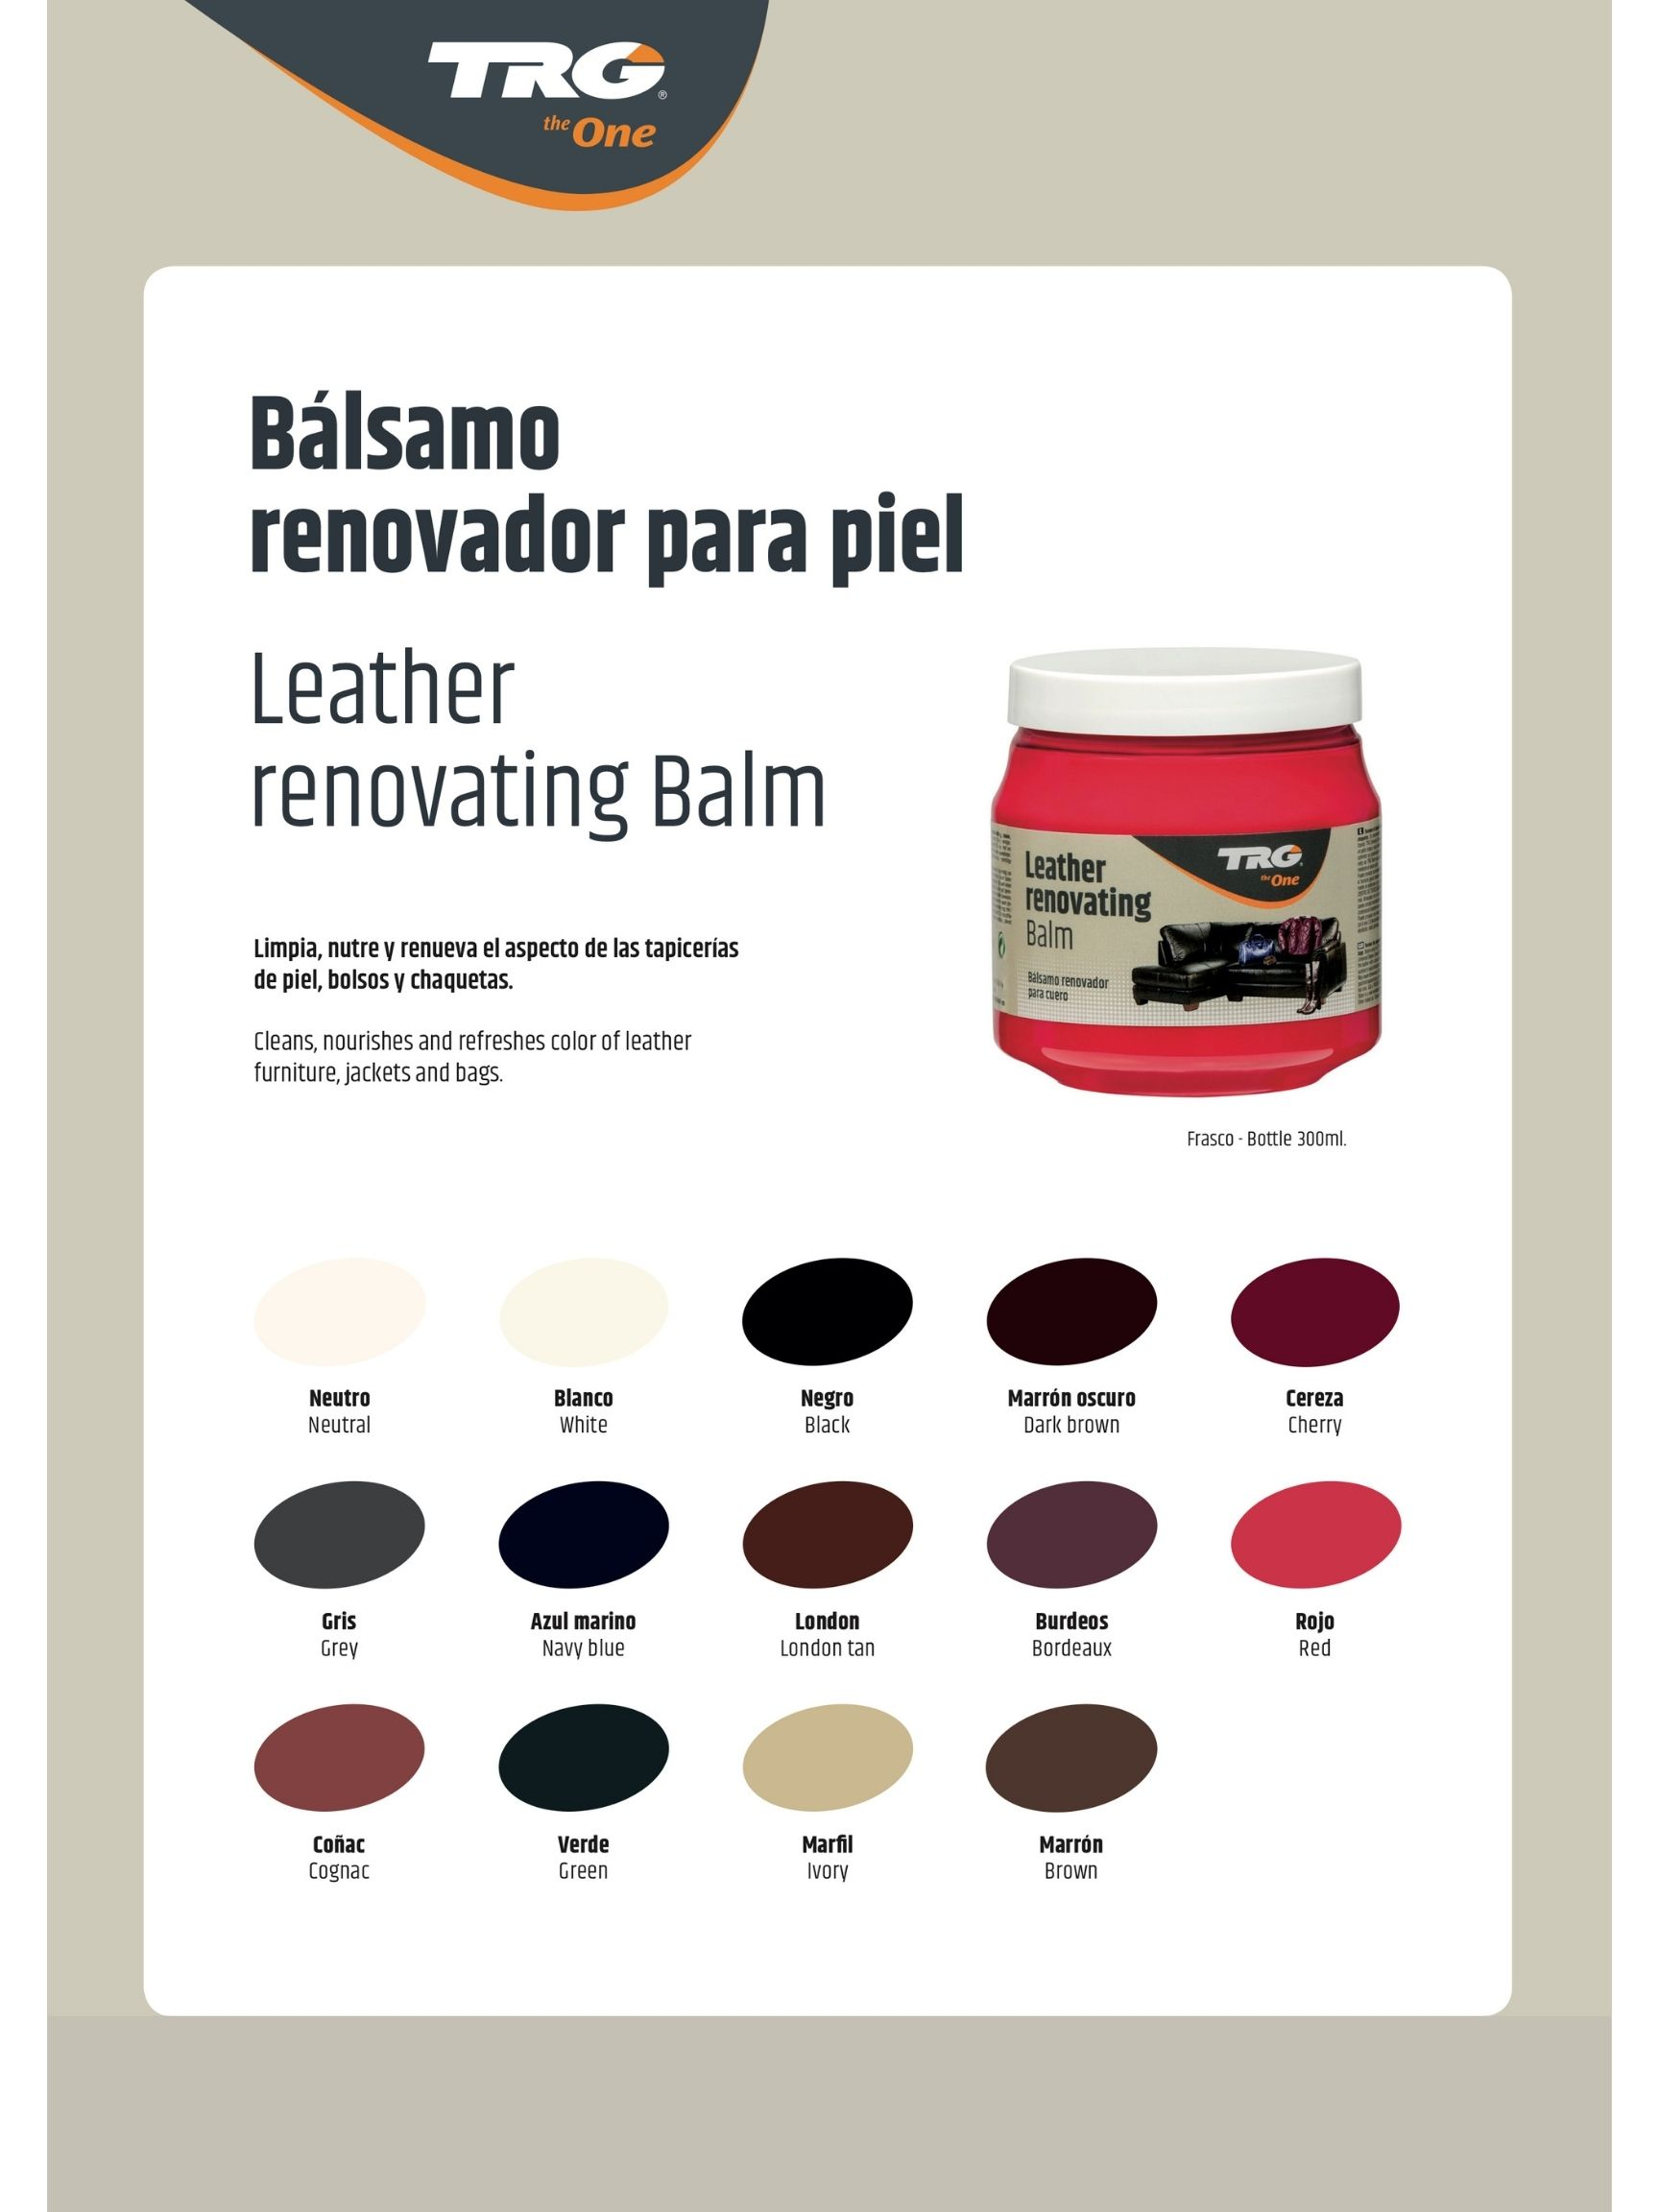 HQ Krém na sedačky Leather Renovating Balm TRG the One VZORNÍK 2021_1